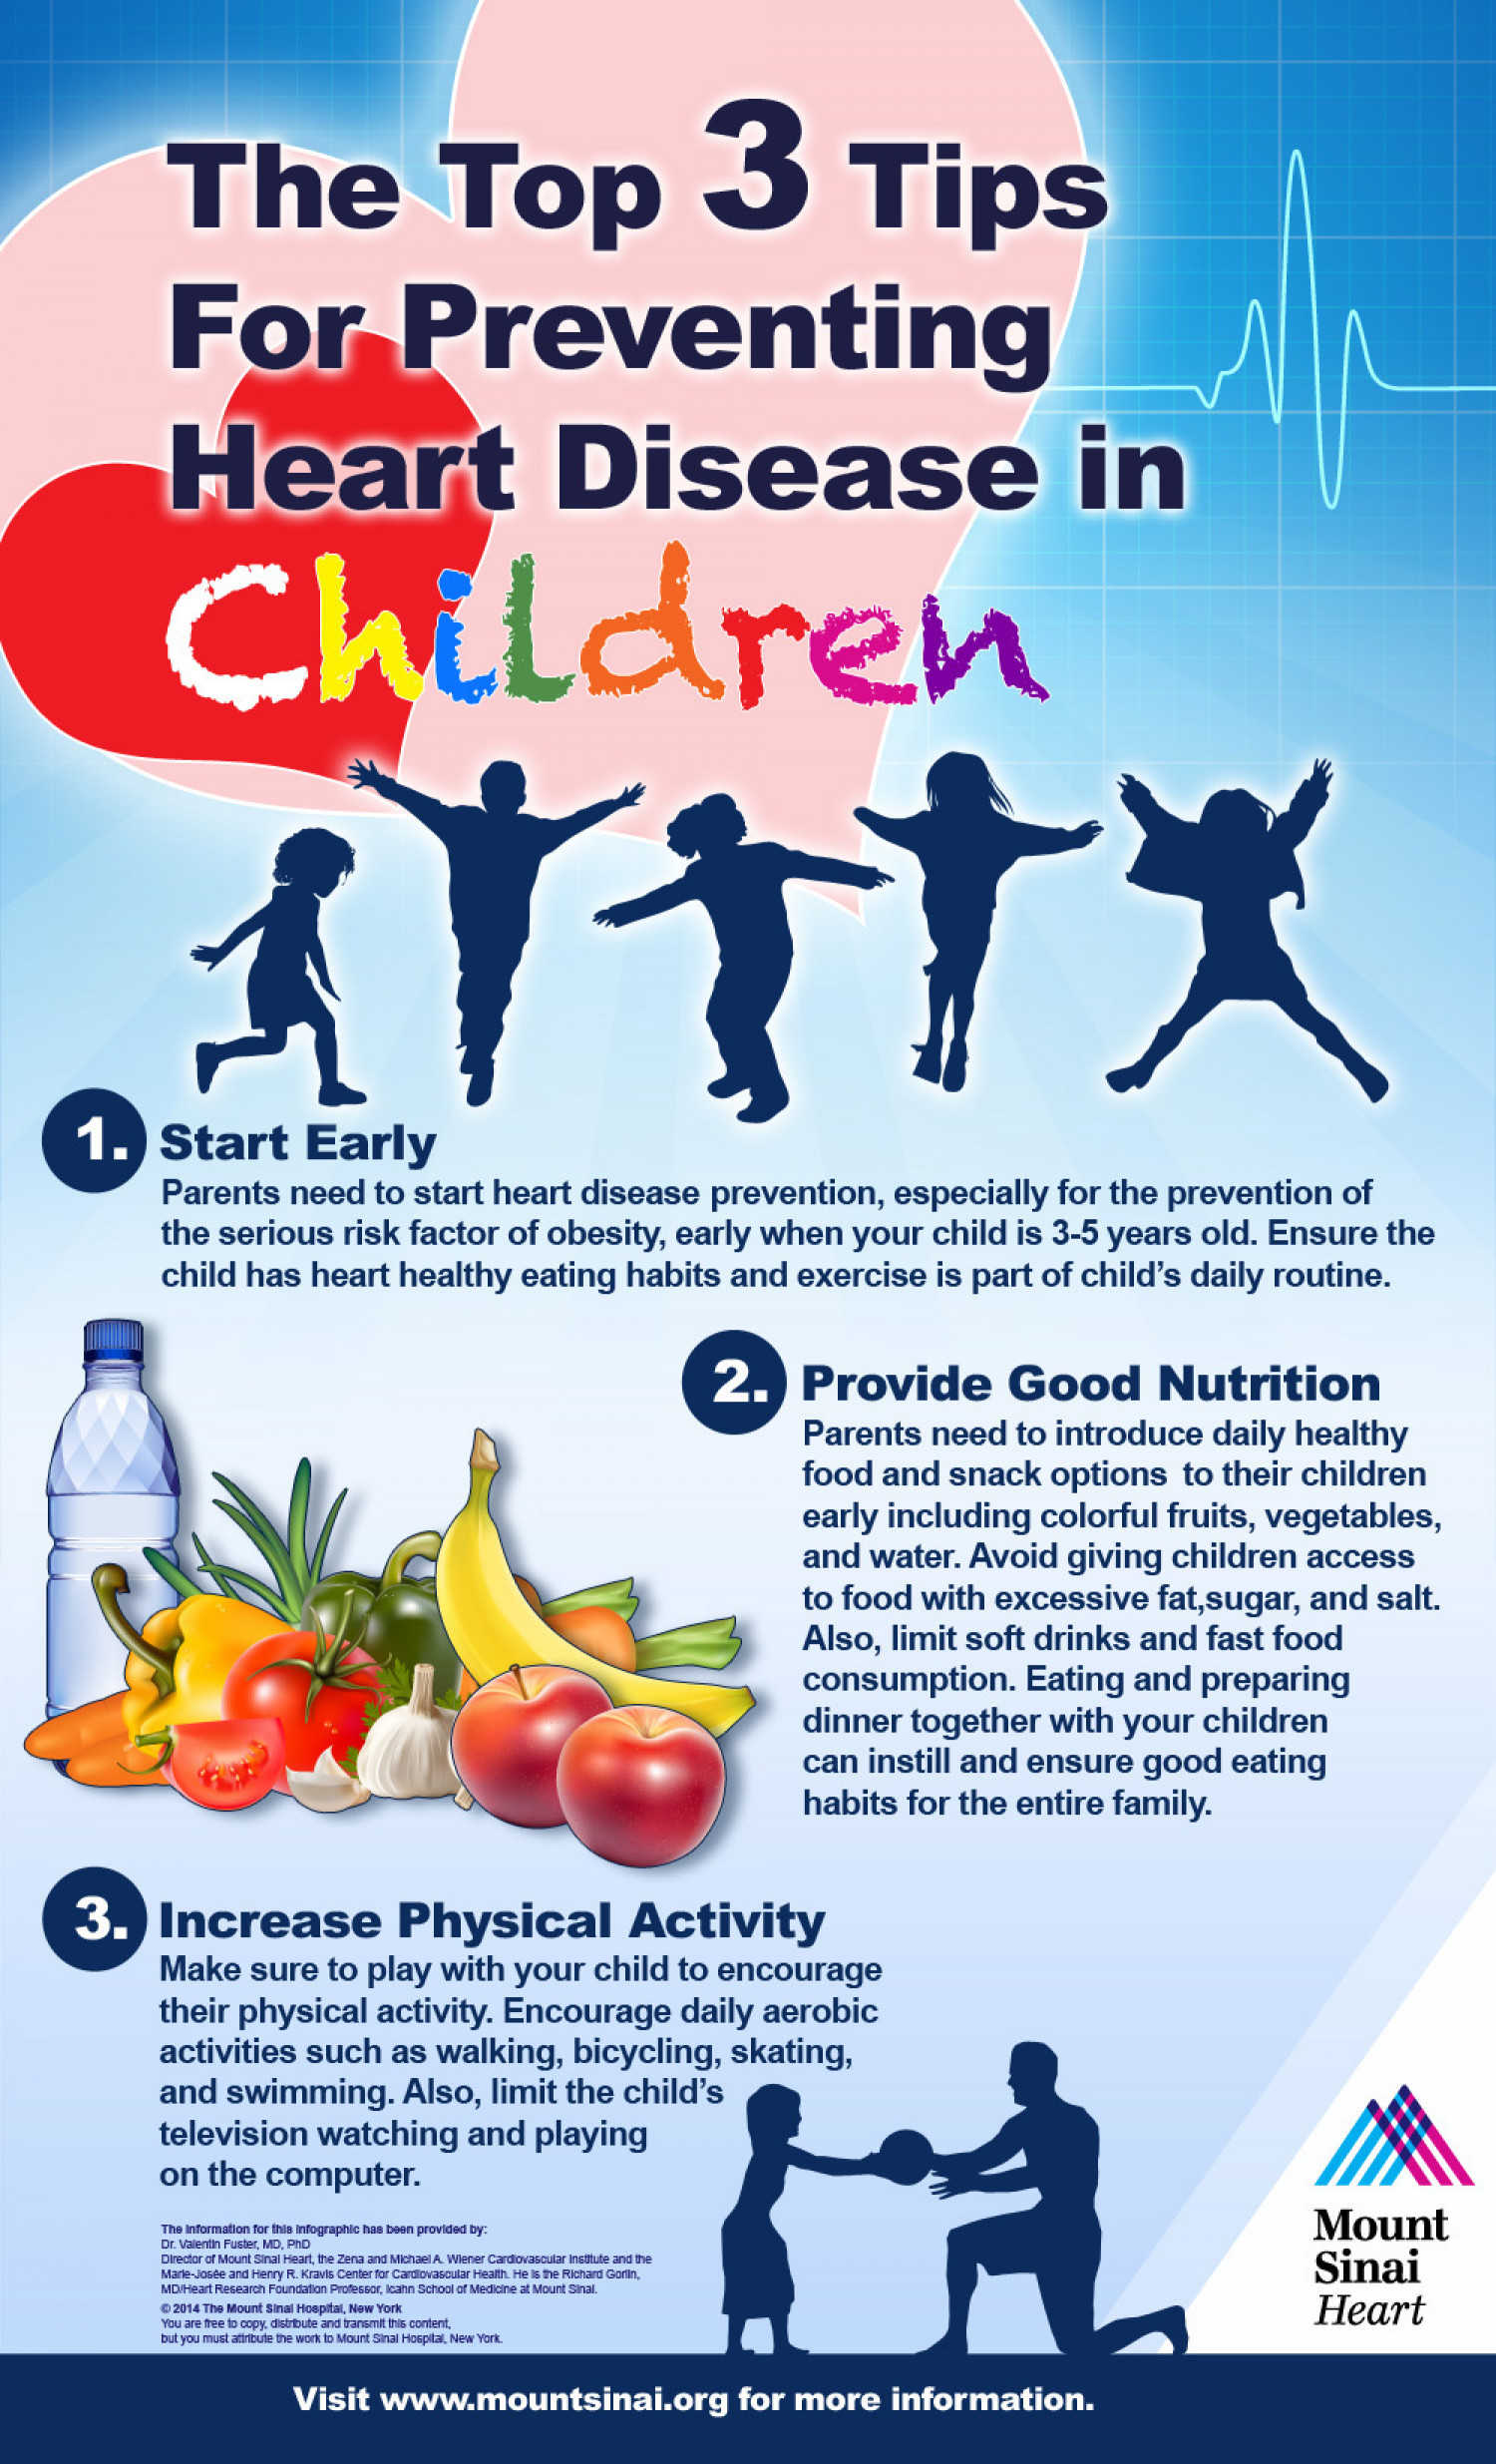 The Top 3 Tips for Preventing Heart Disease in Children Infographic